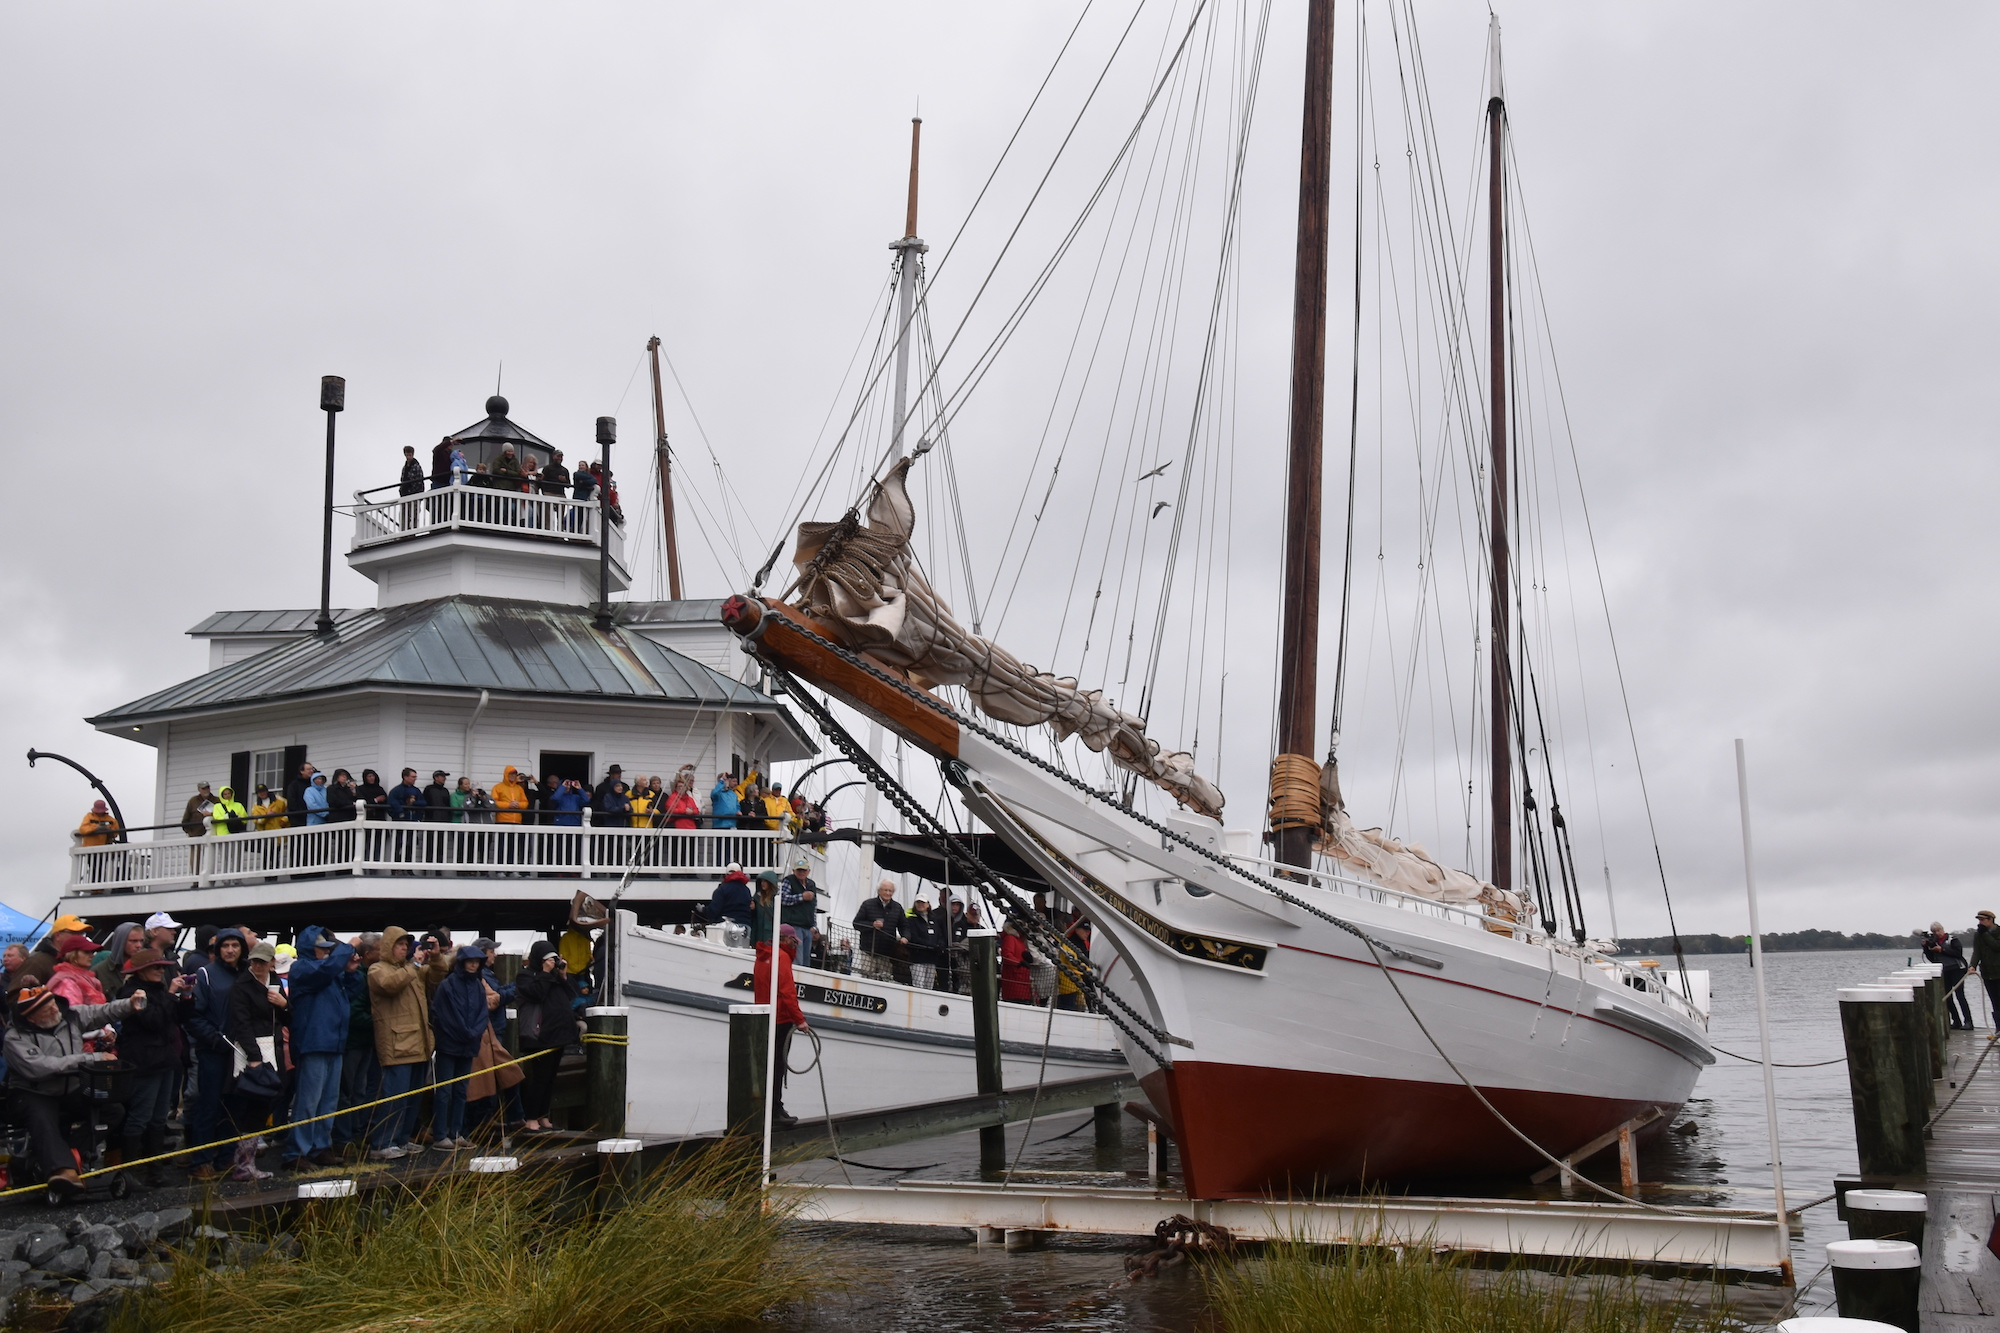 Edna Lockwood  is relaunched into the Miles River on Oct. 27, 2018, in front of a crowd at the Chesapeake Bay Maritime Museum. The National Historic Landmark underwent a two-year restoration of her nine-log hull from 2016–2018, and will be traveling to numerous ports of call this summer on heritage tour dedicated to educating the public about traditional Bay boatbuilding techniques and the oystering industry past and present.